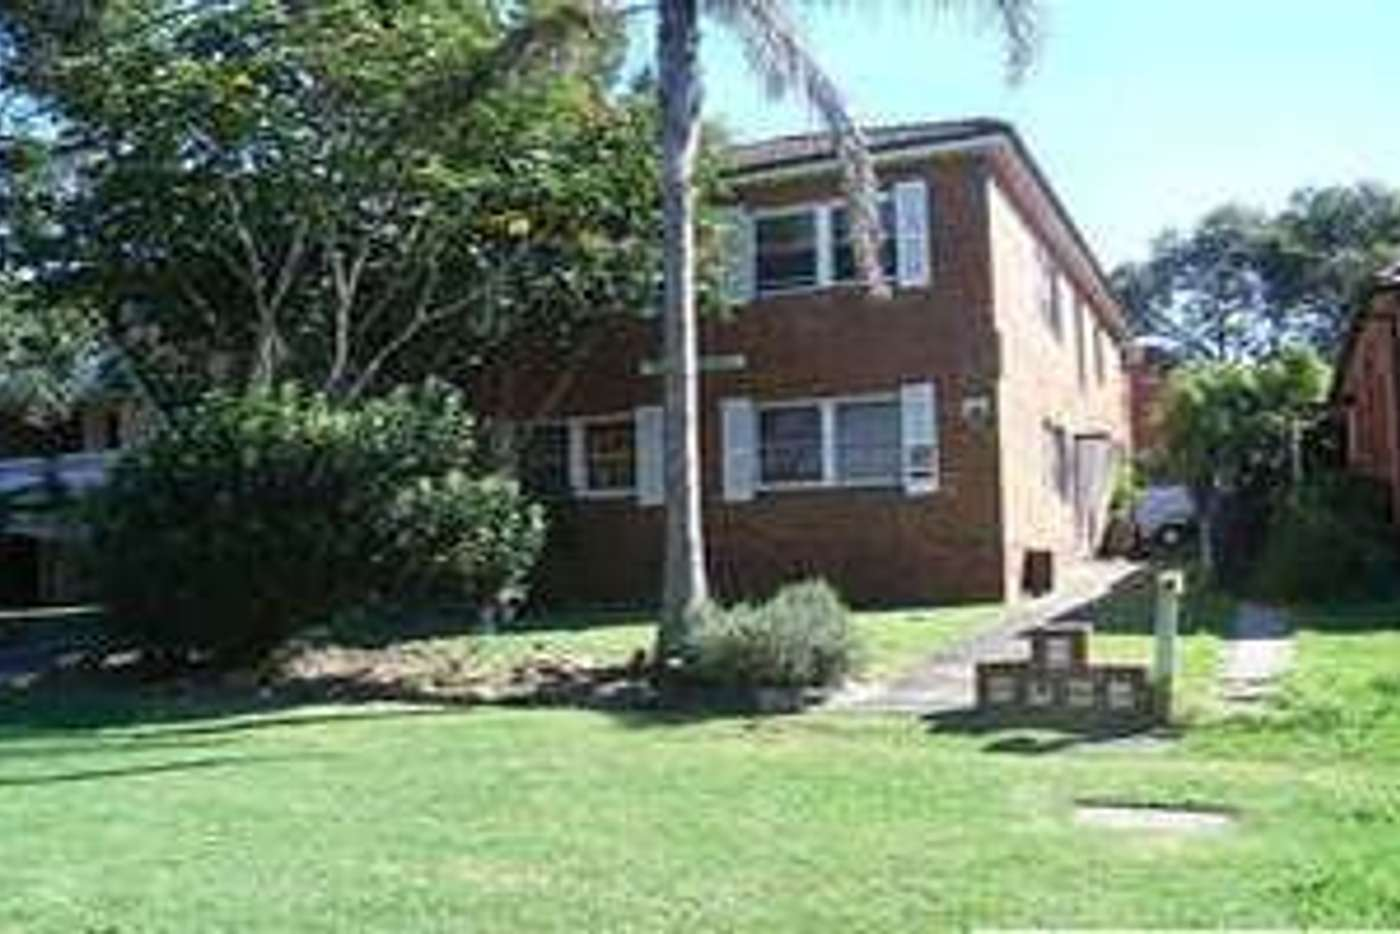 Main view of Homely unit listing, 3/37 Seaview Street, Cronulla NSW 2230